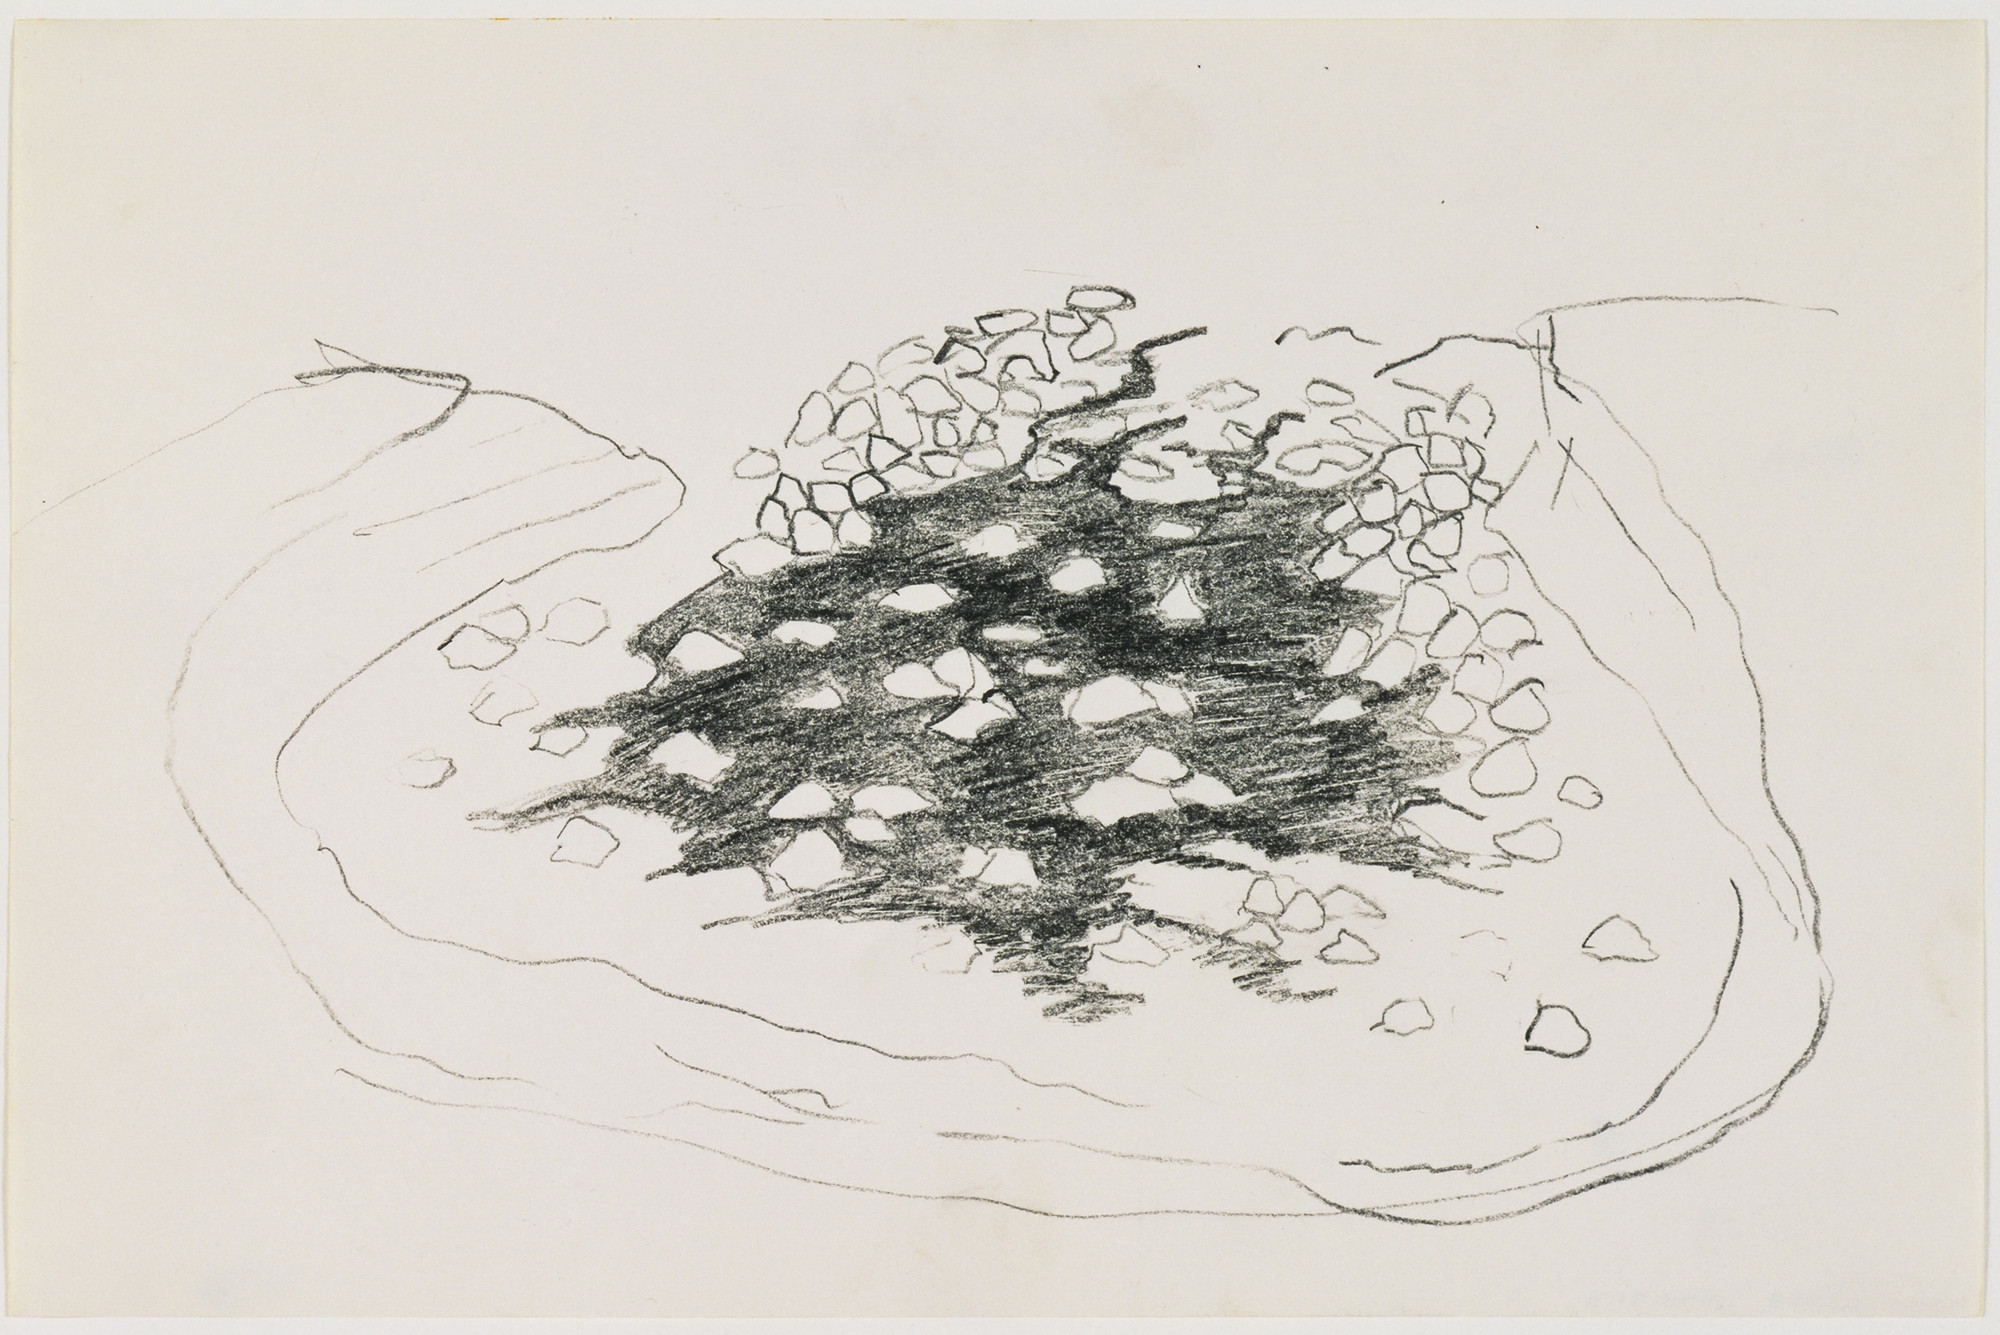 Robert Smithson. Sketch for Quarry Project: Texas Overflow. 1970